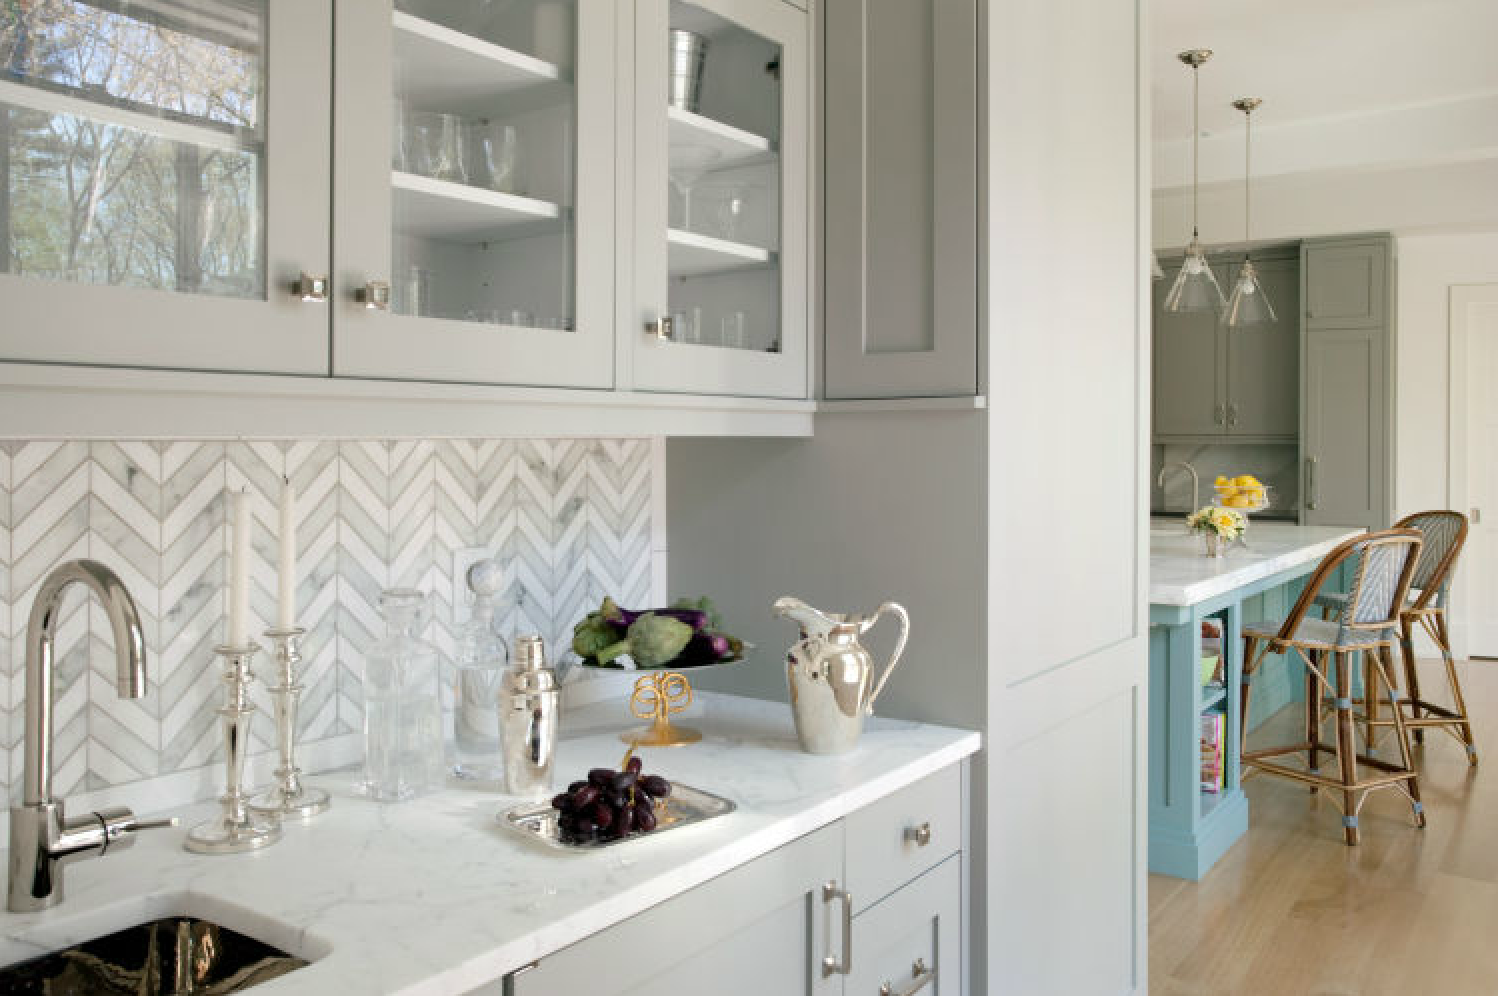 Kitchen Floor Tiles Advice 6 Ways To Make Your Kitchen Pop With Patterned Tile Porch Advice